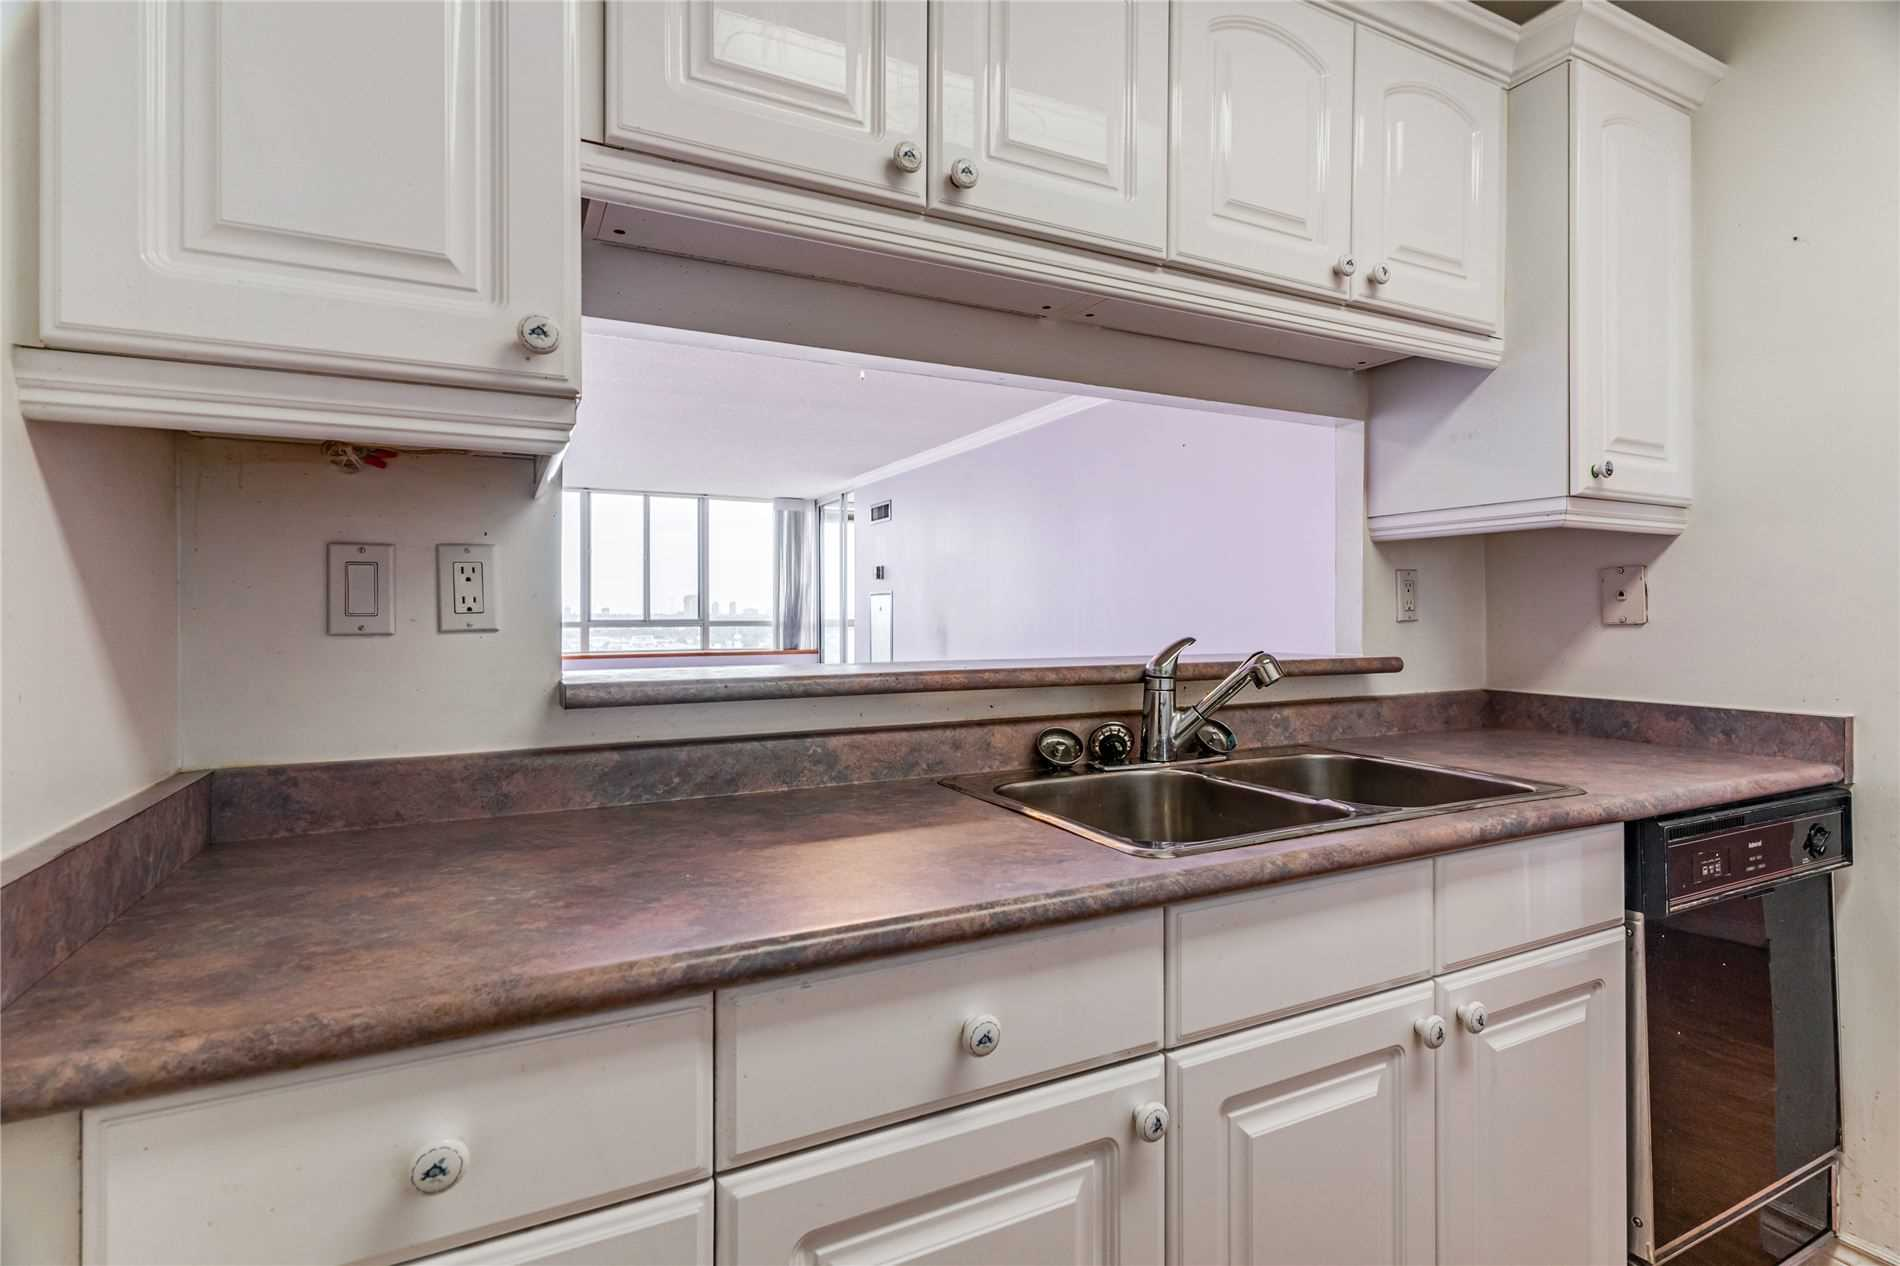 Image 4 of 40 showing inside of 2 Bedroom Condo Apt Apartment for Sale at 1665 Pickering Pkwy Unit# 812, Pickering L1V6L4